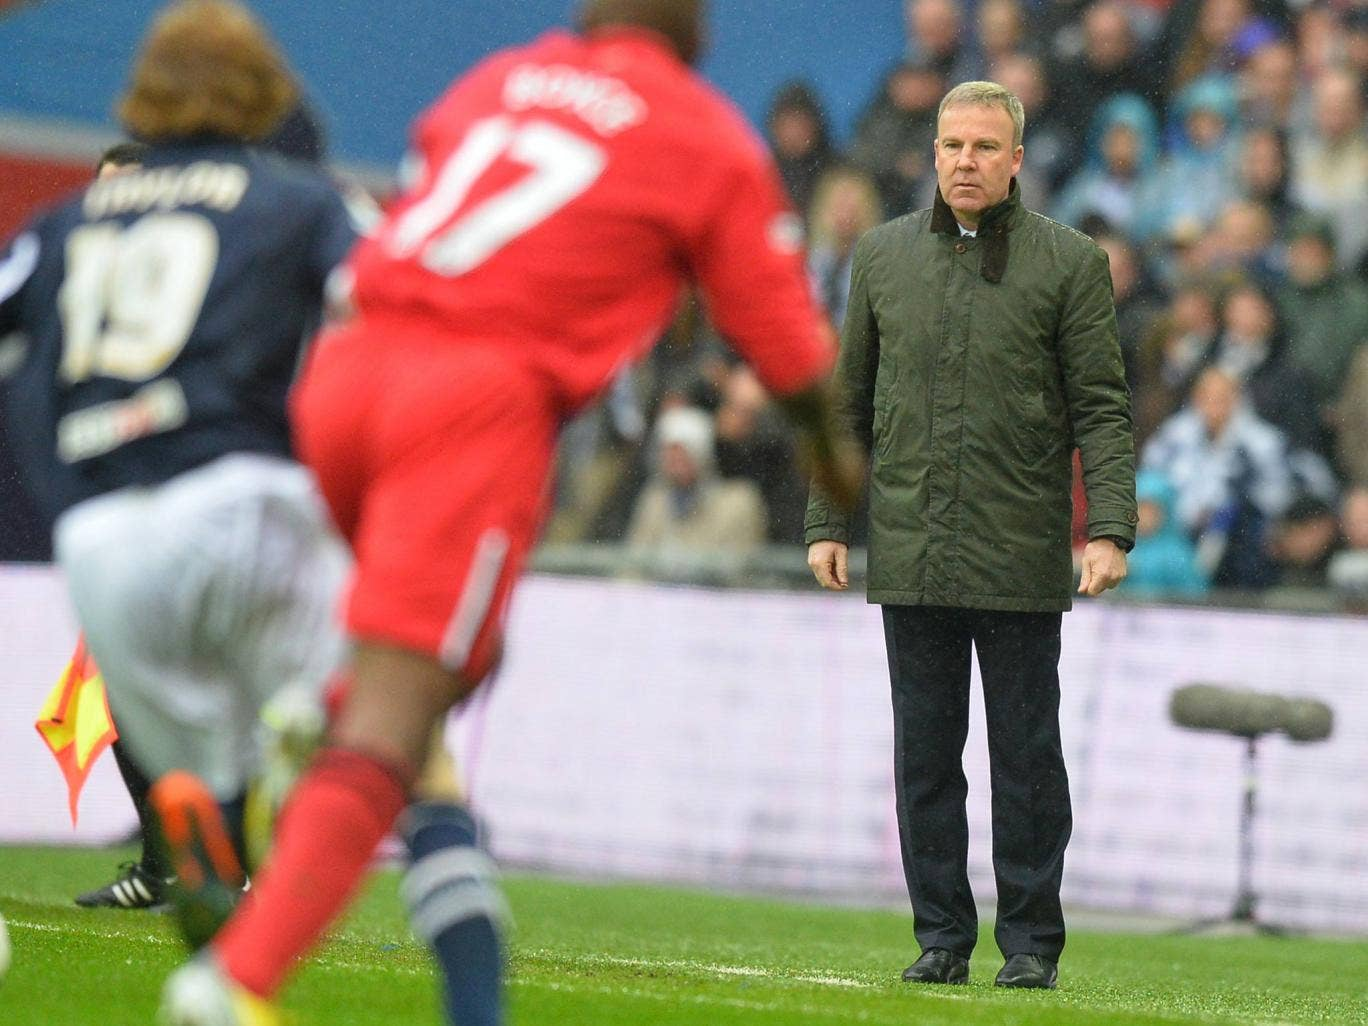 Kenny Jackett looks on during Millwall's FA Cup semi-final defeat to Wigan